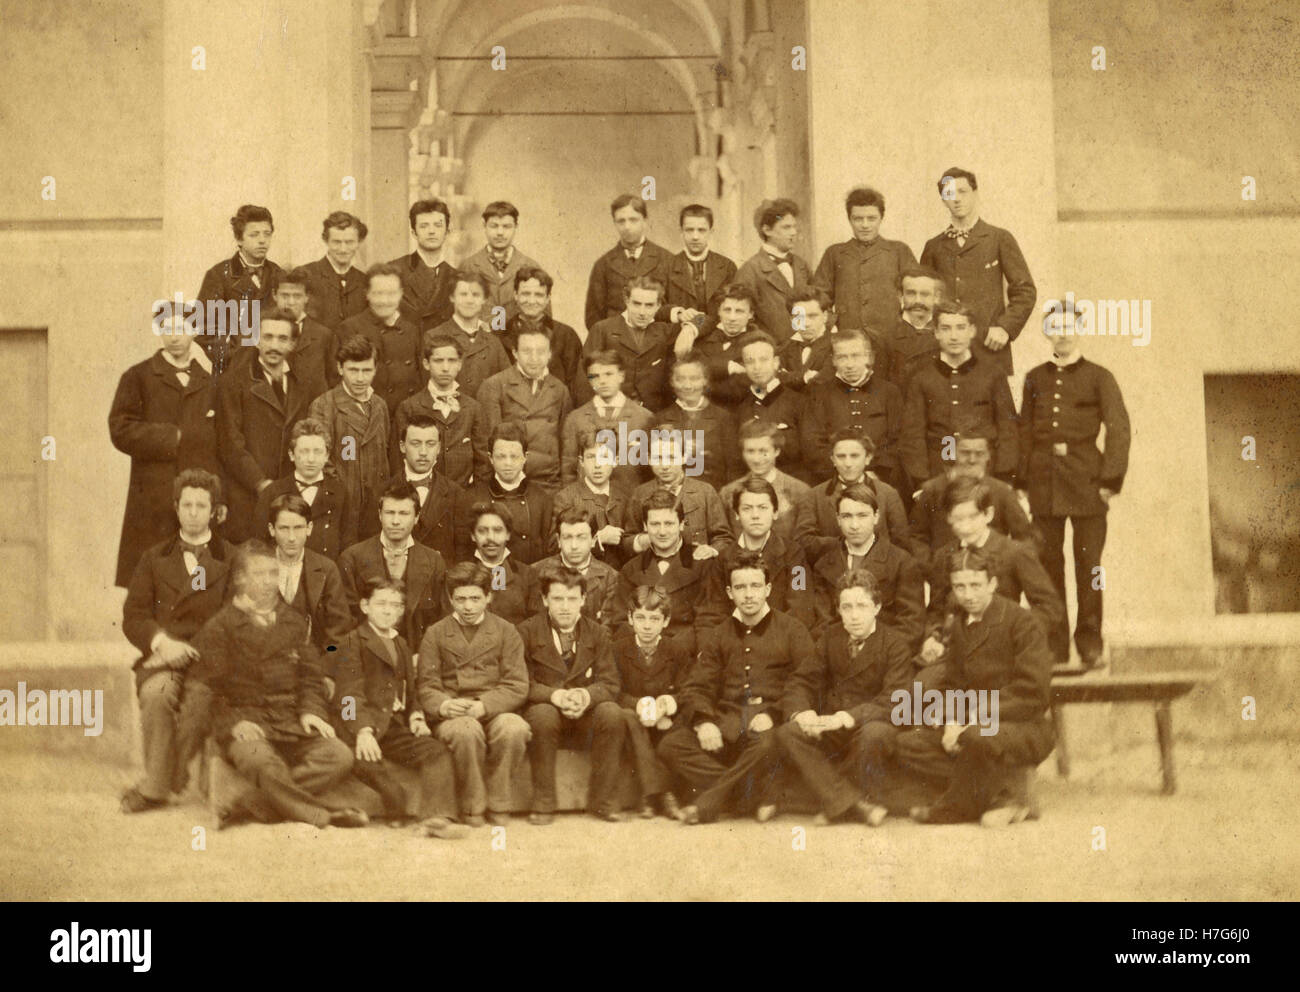 College group photo, Italy - Stock Image